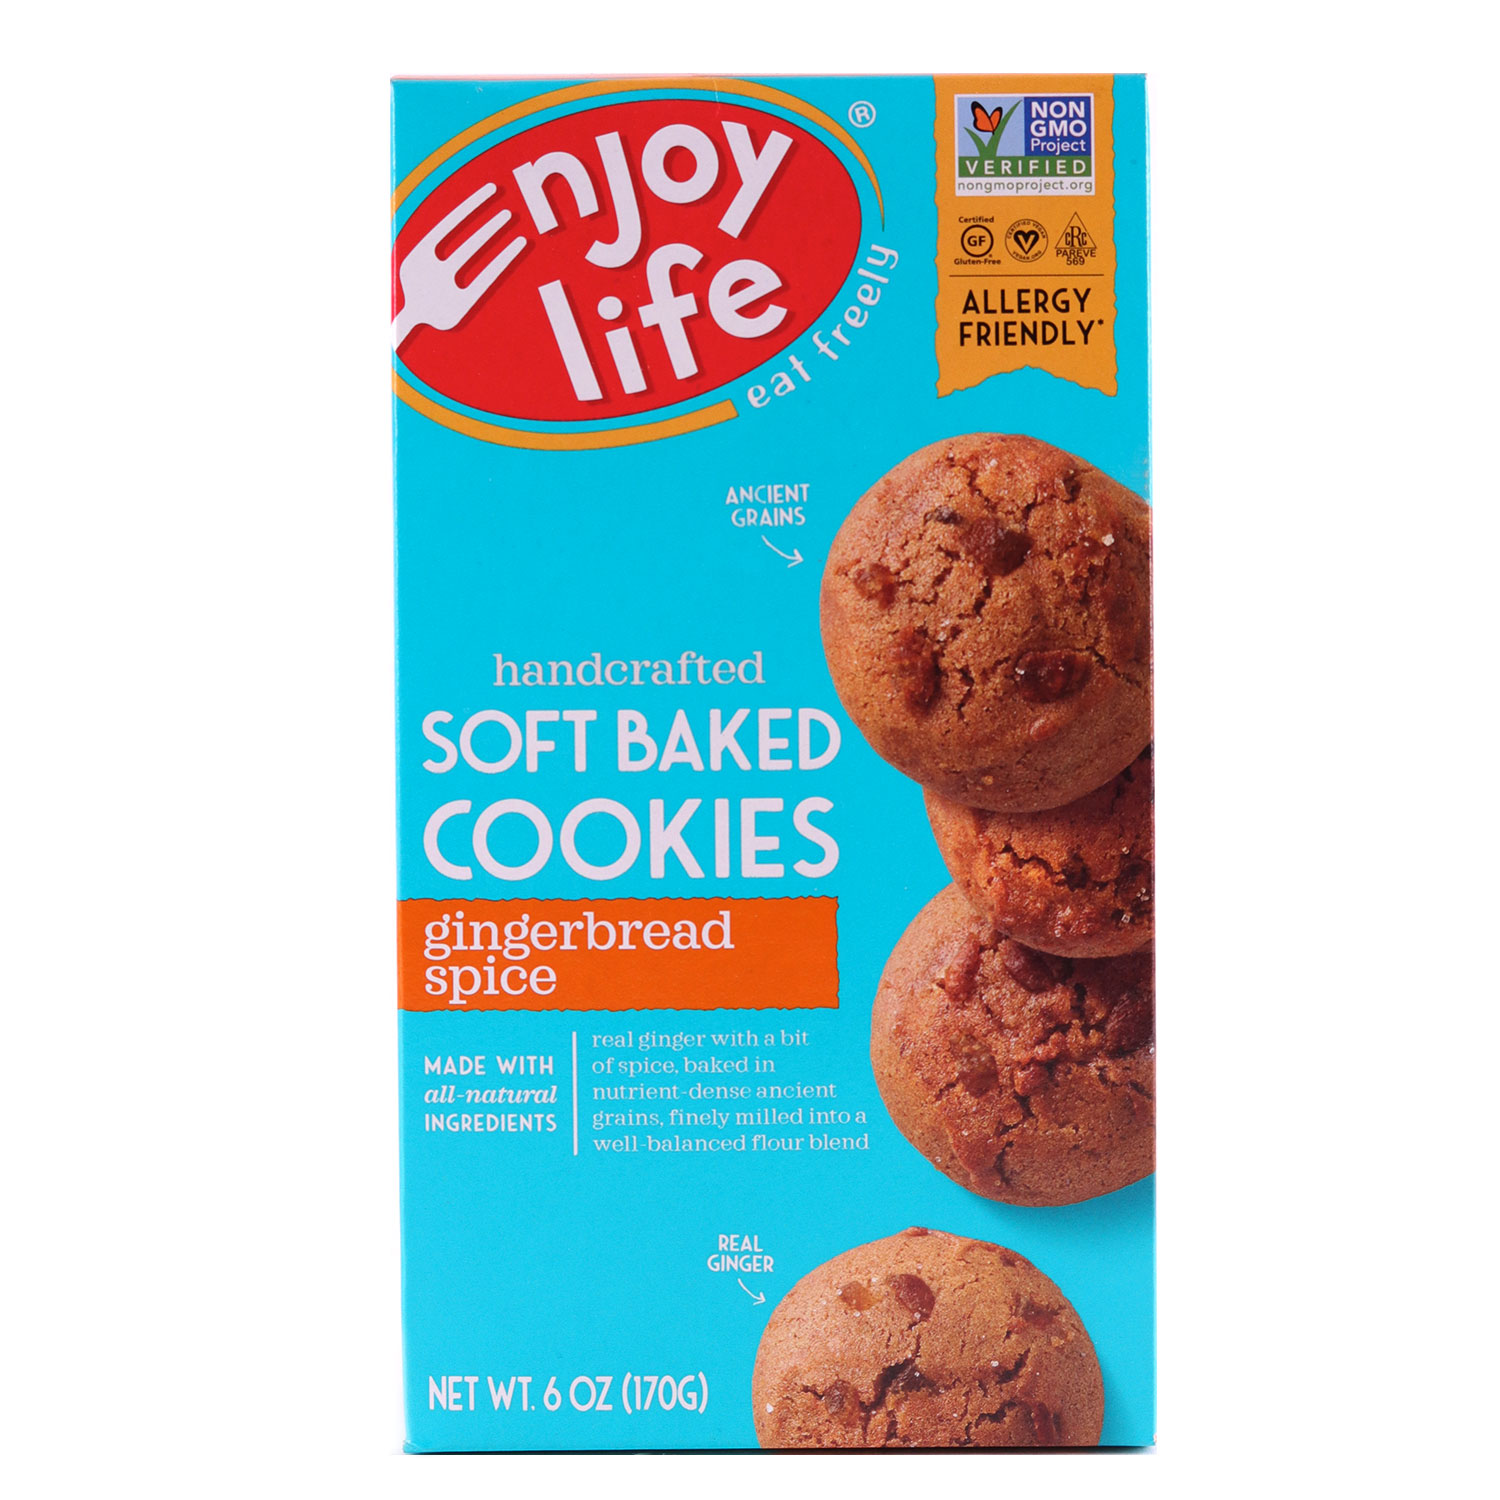 Soft Baked Cookies, Gingerbread Spice-Gluten Free